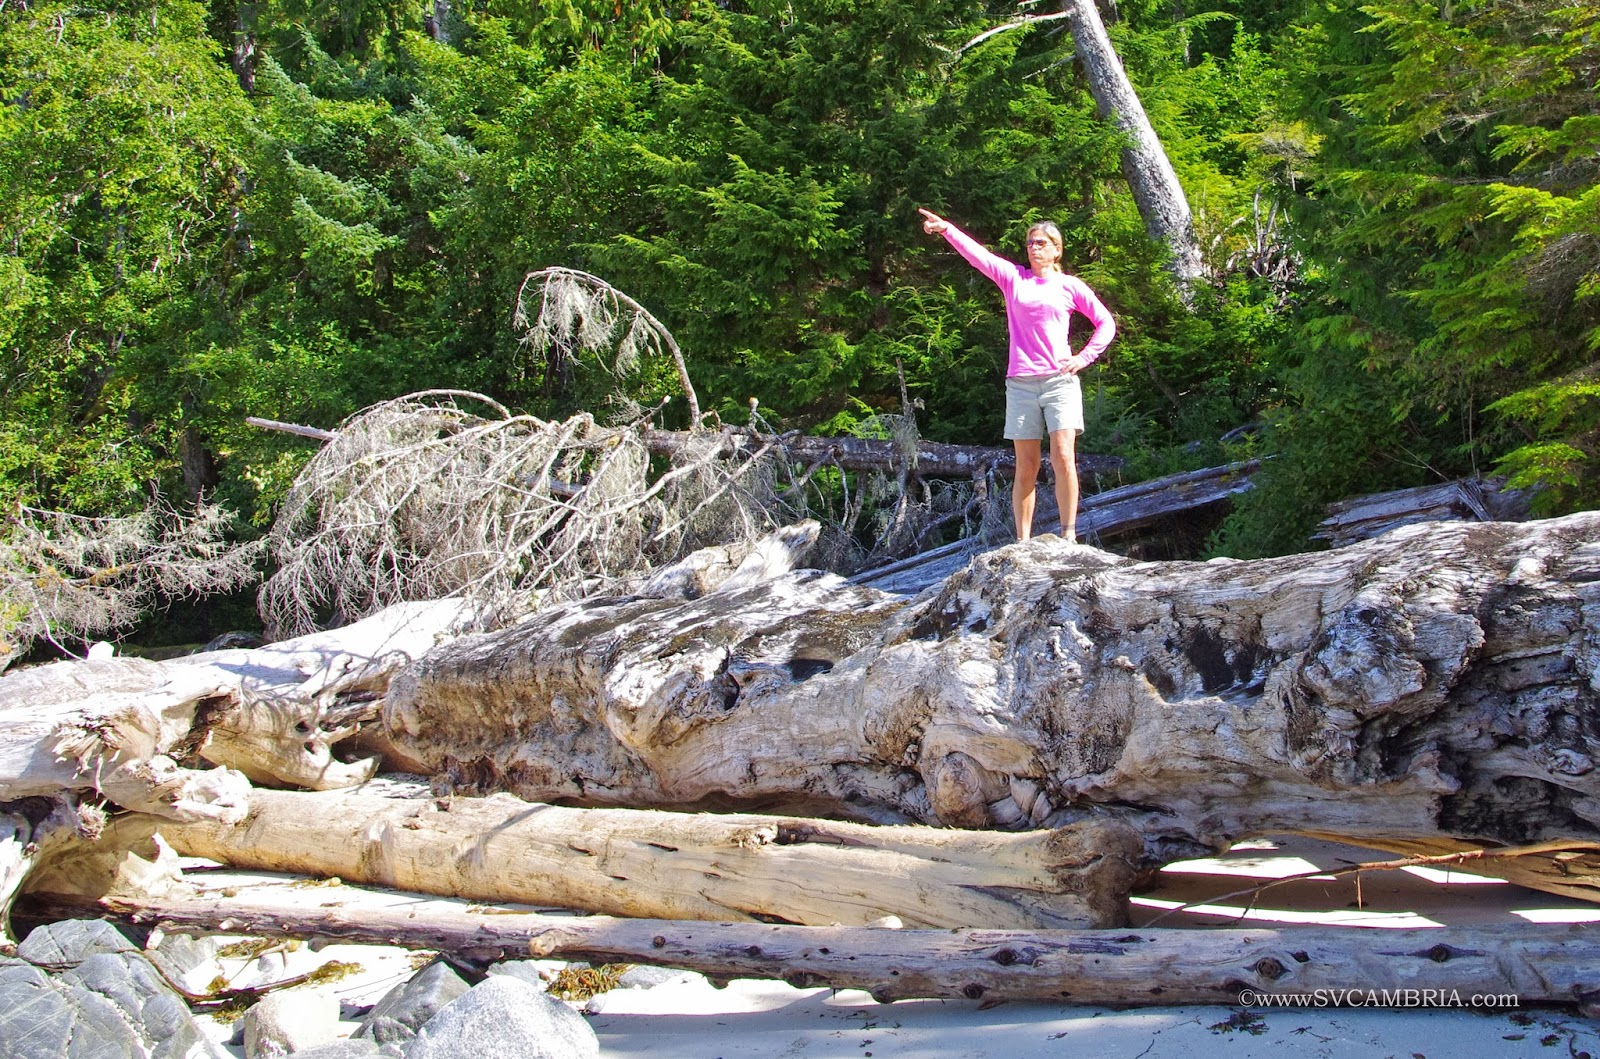 One of the many logs that have washed up on the beach at Fury Island.